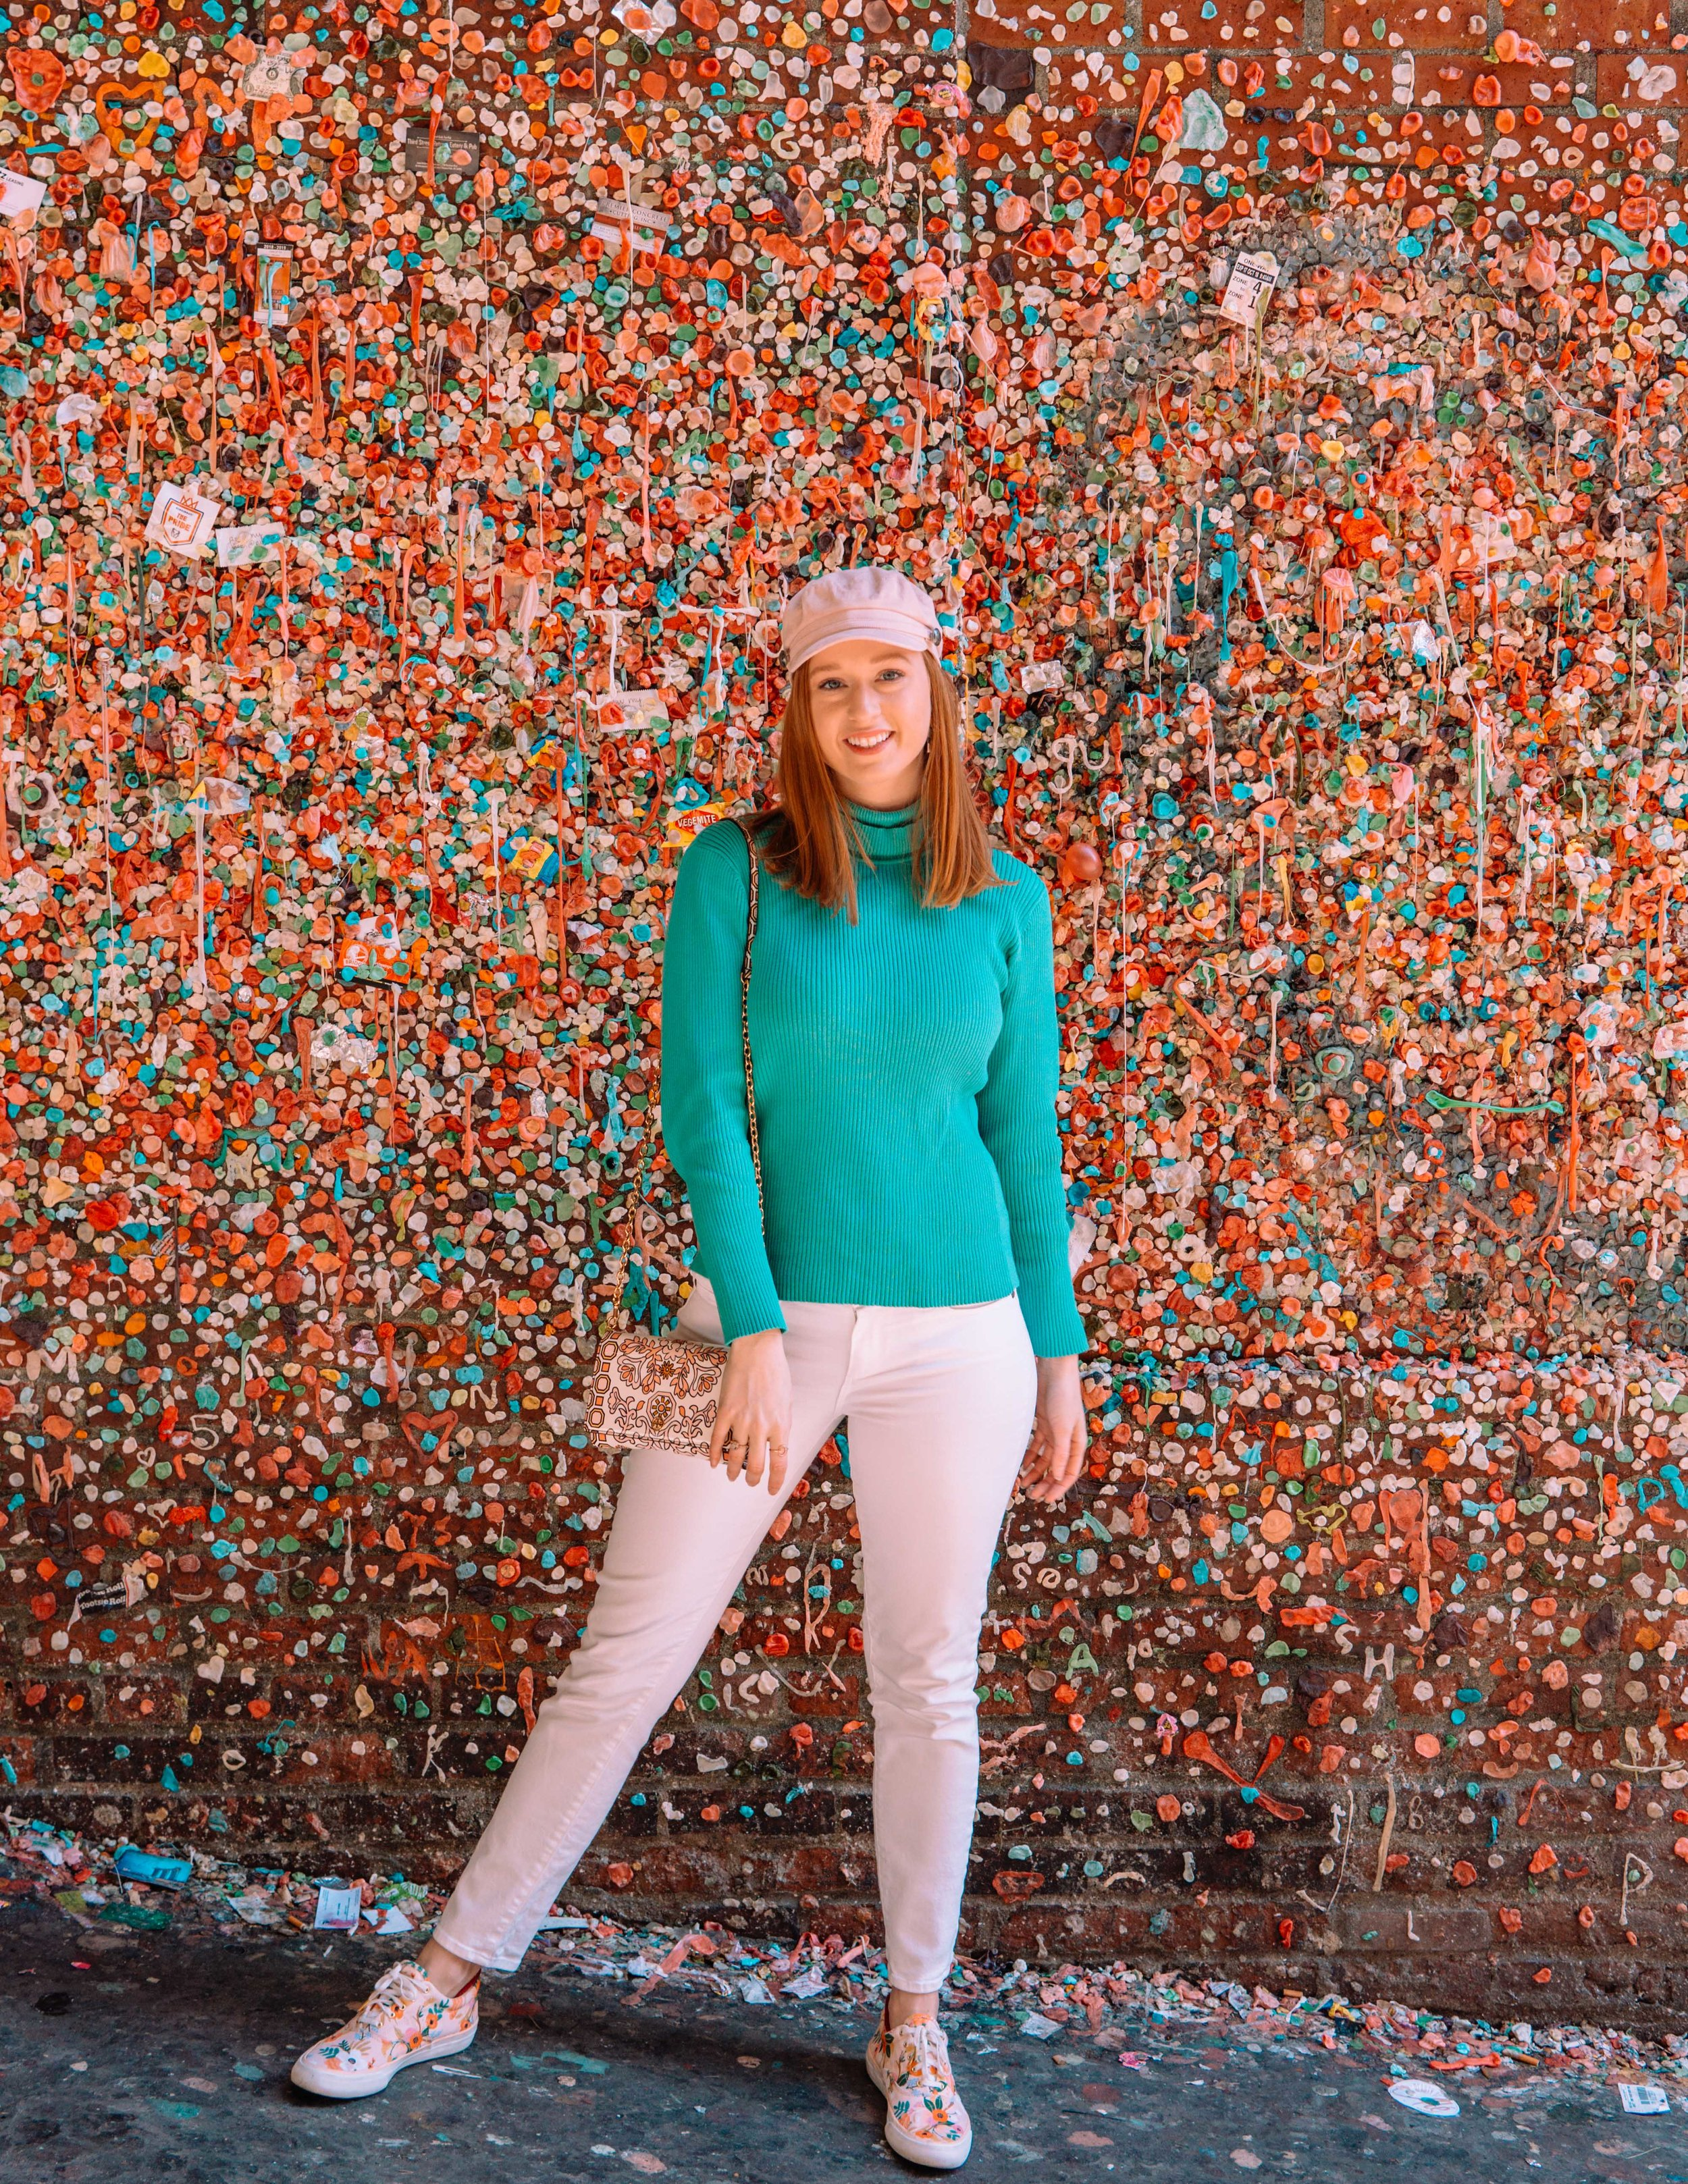 Gum Wall in Pike Place Market